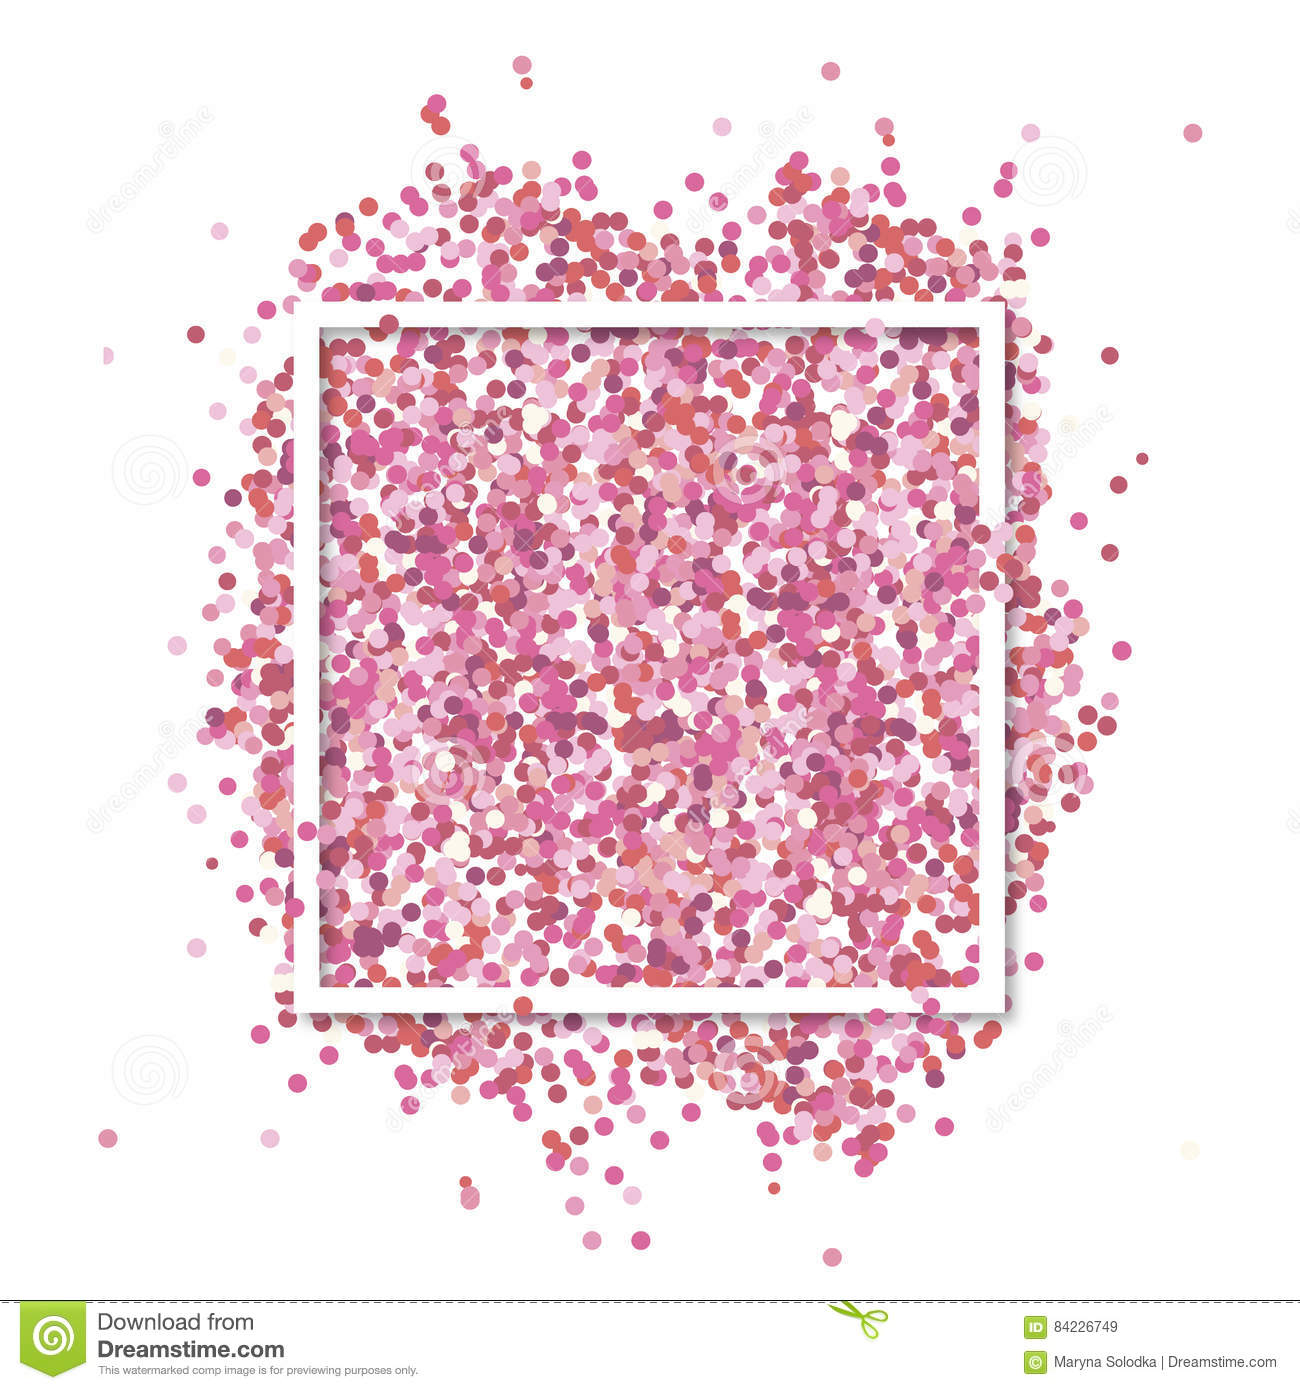 Pink confetti in in white square frame. Romantic Valentines background with text place.